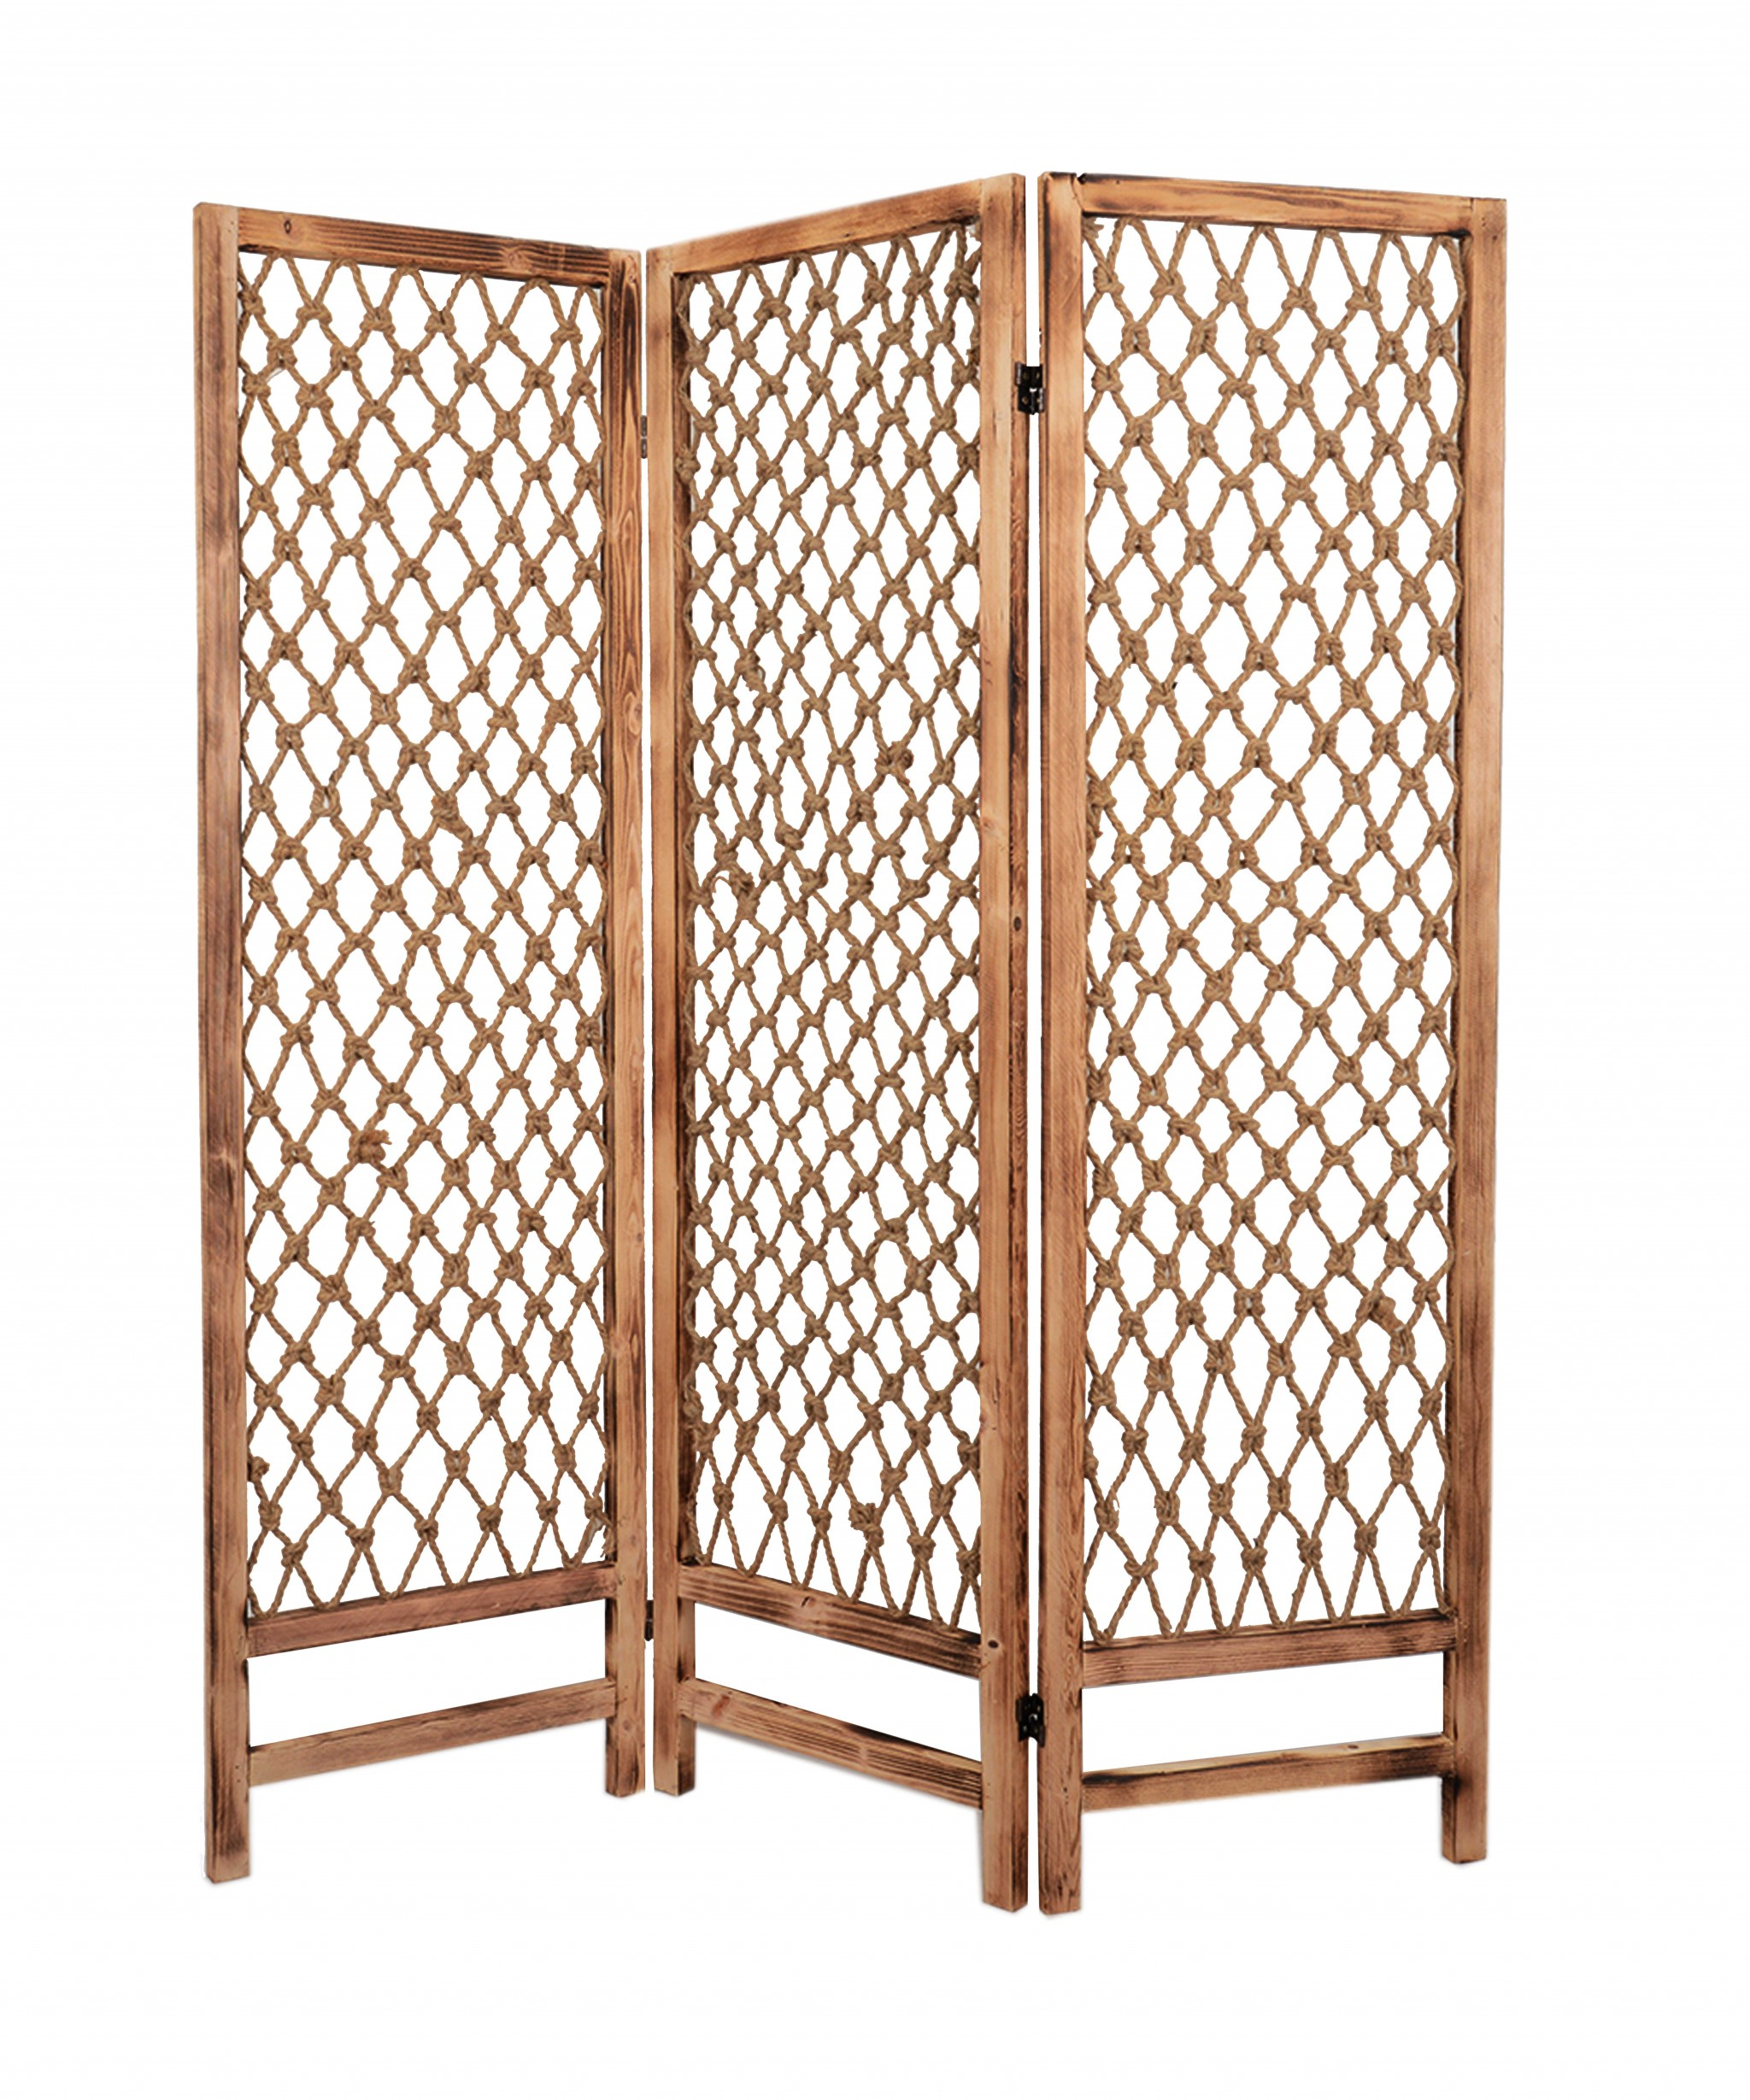 "69"" X 60"" Natural Rope Wooden Screen"